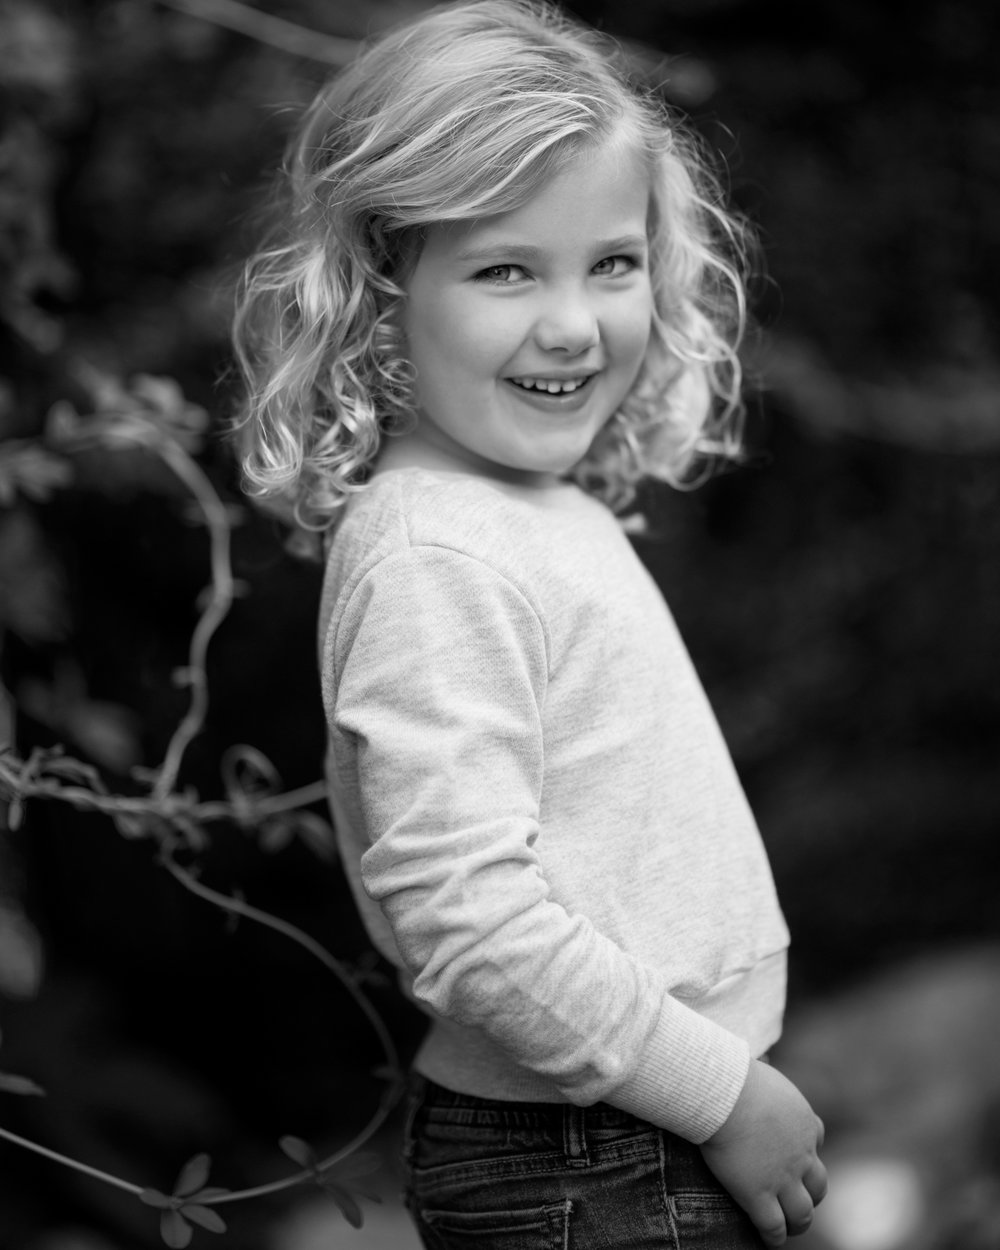 Maureen_Ford_Photography_Kids_0021.jpg